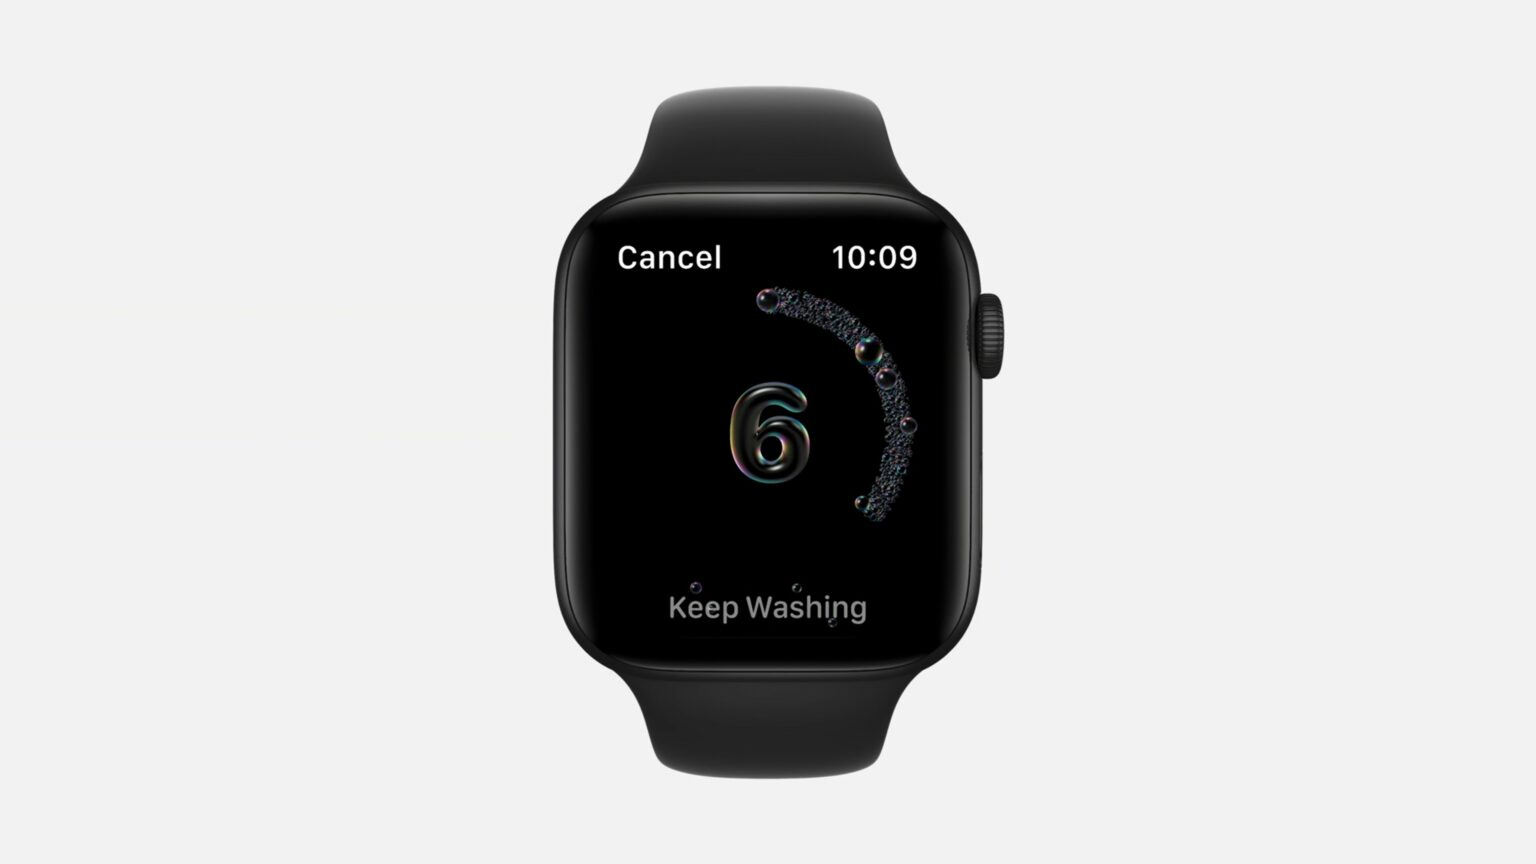 With watchOS 7, you're just a couple quick toggles away from maximum handwashing effectiveness.